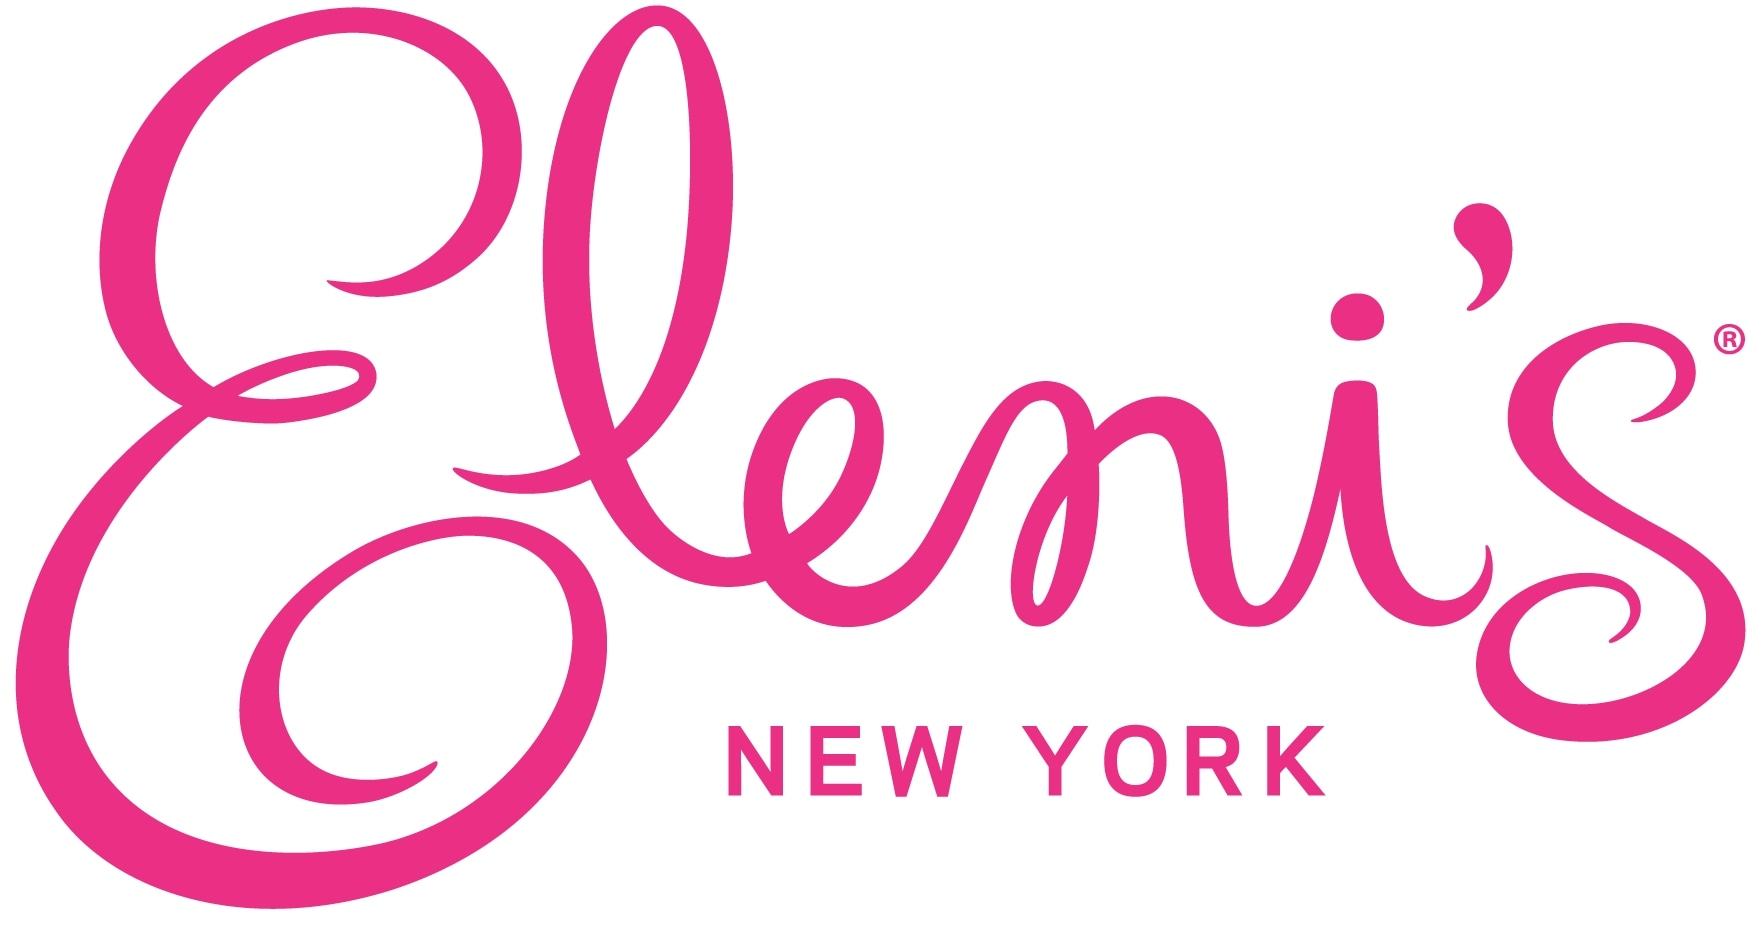 Eleni's New York promo codes